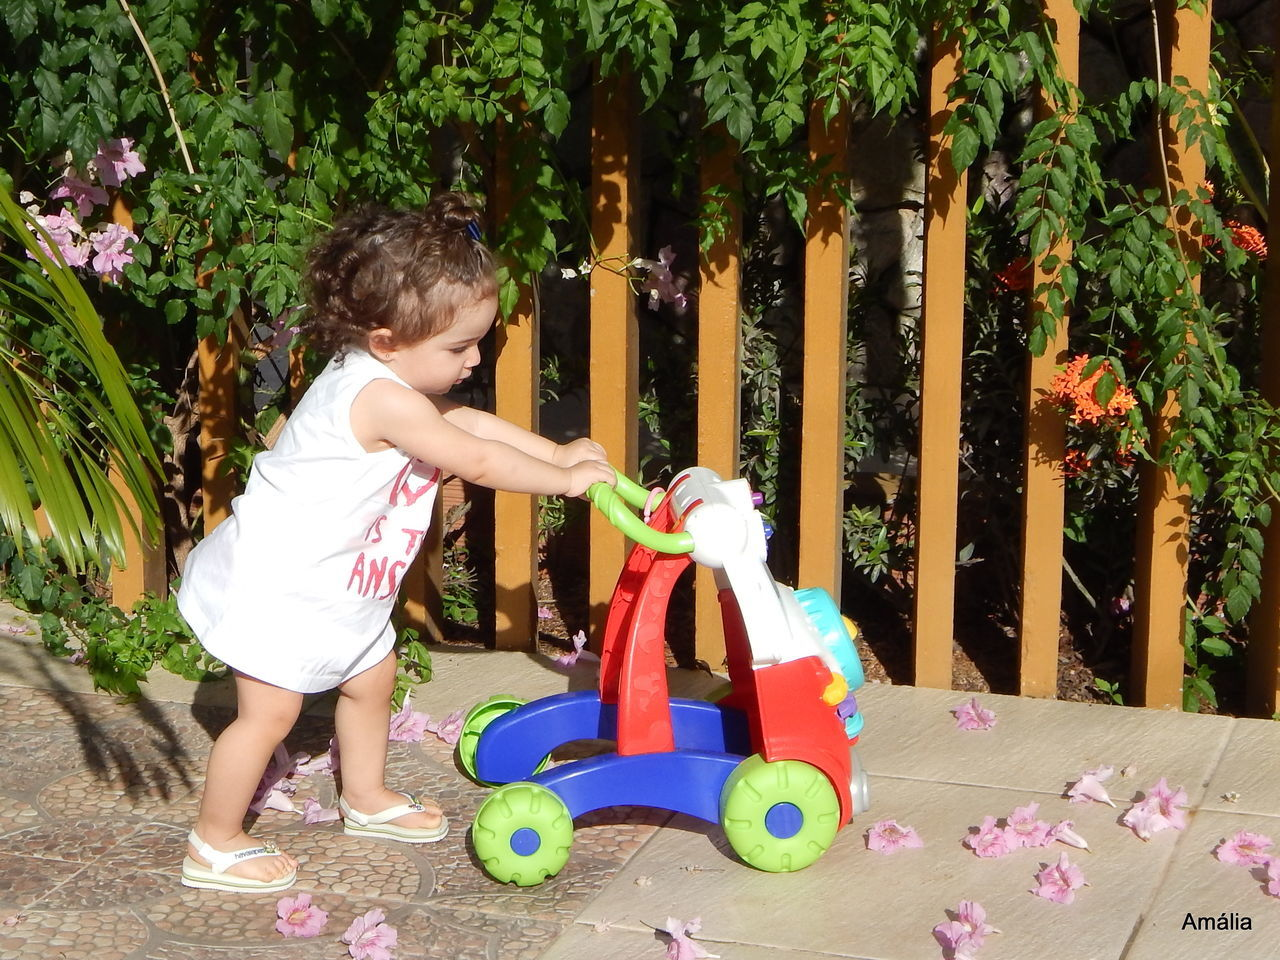 Side View Of Child Playing With Toy At Yard